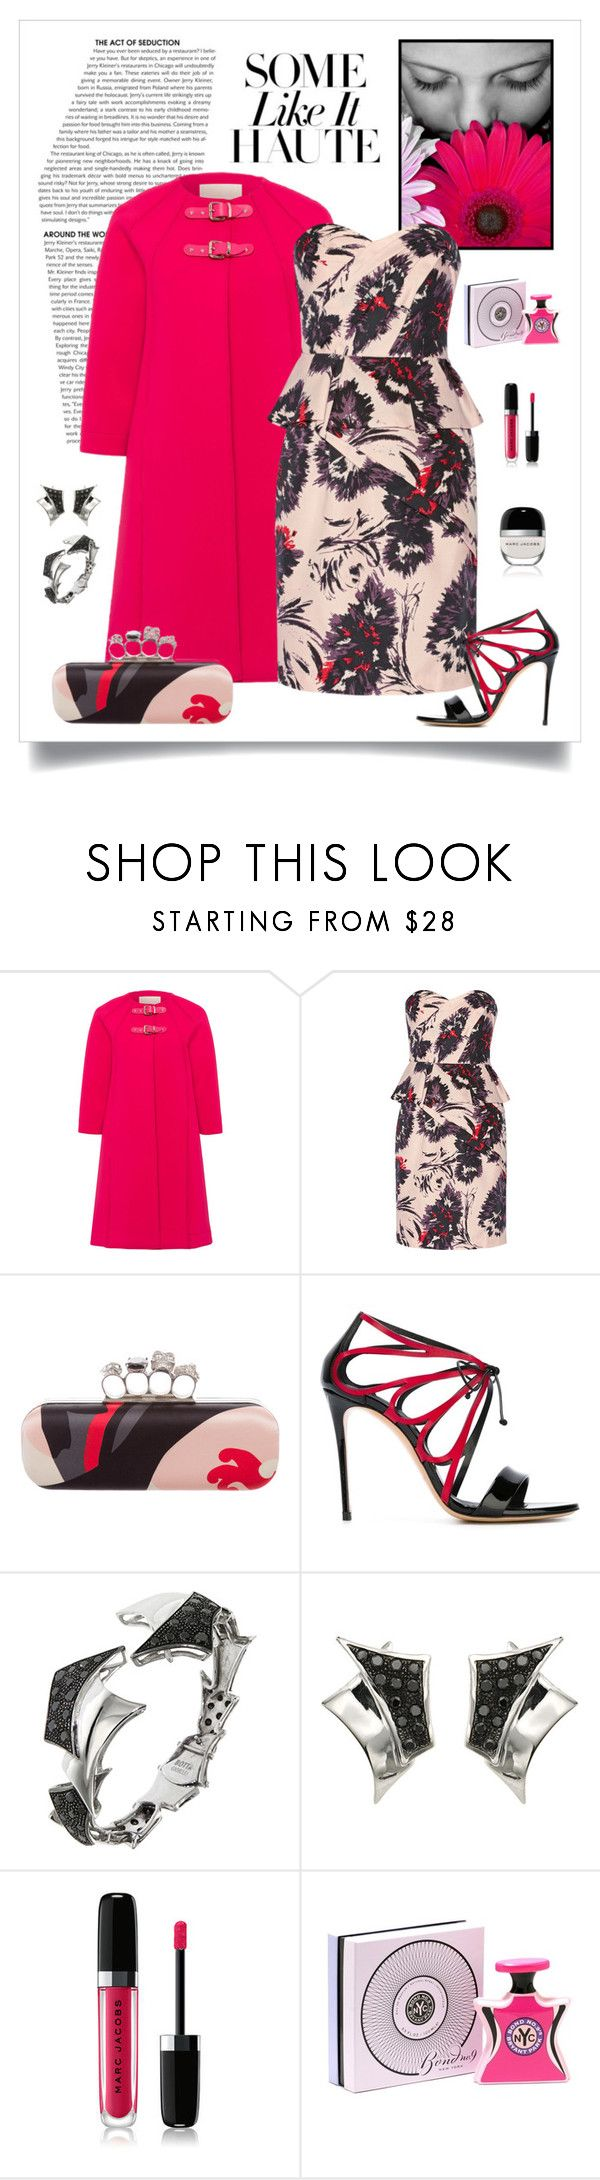 """""""Mikael Aghal Printed Cotton Peplum Dress"""" by romaboots-1 ❤ liked on Polyvore featuring Marina Hoermanseder, Mikael Aghal, Alexander McQueen, Casadei, Botta Gioielli, Marc Jacobs and Bond No. 9"""